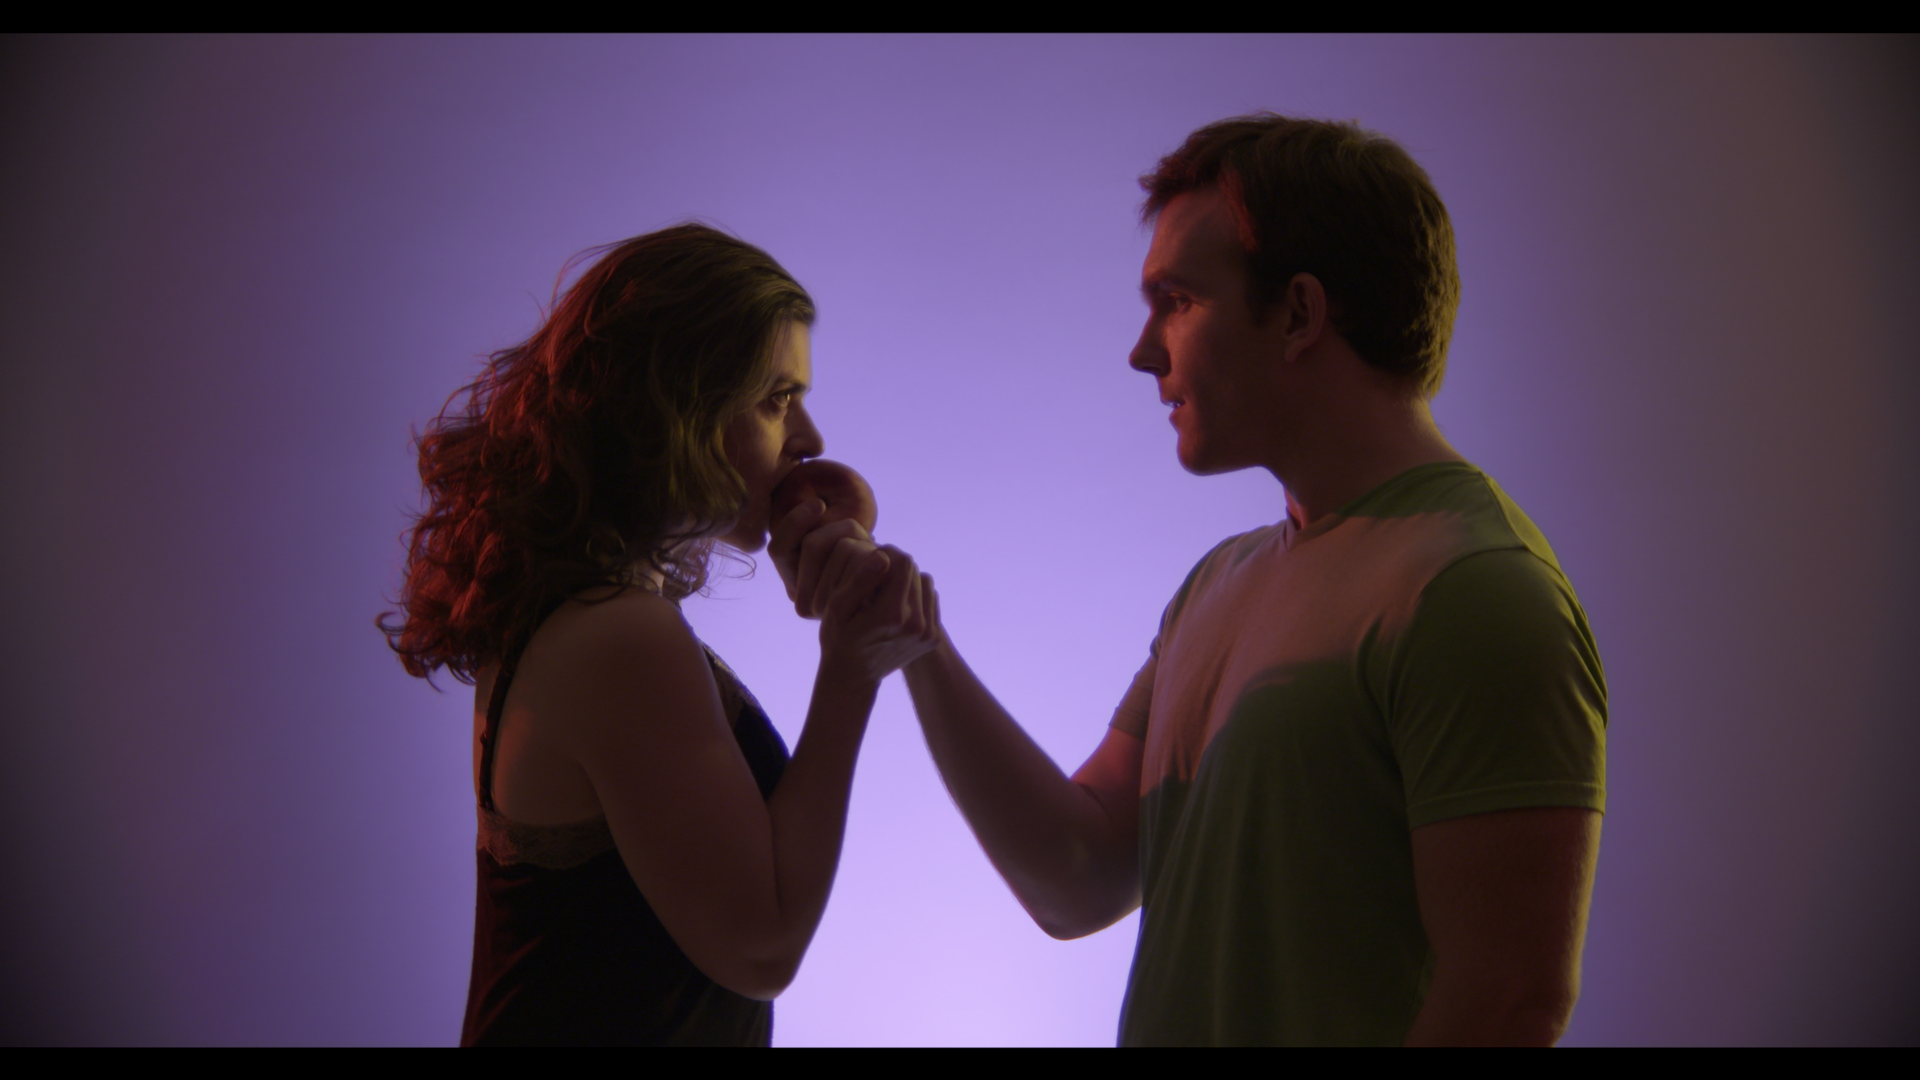 Claire (Amelia Mathews) and Franklin (Roger Wayne) share a peach during a psychic vision. Access a png version ofthe image at this  link and a jpeg  here.